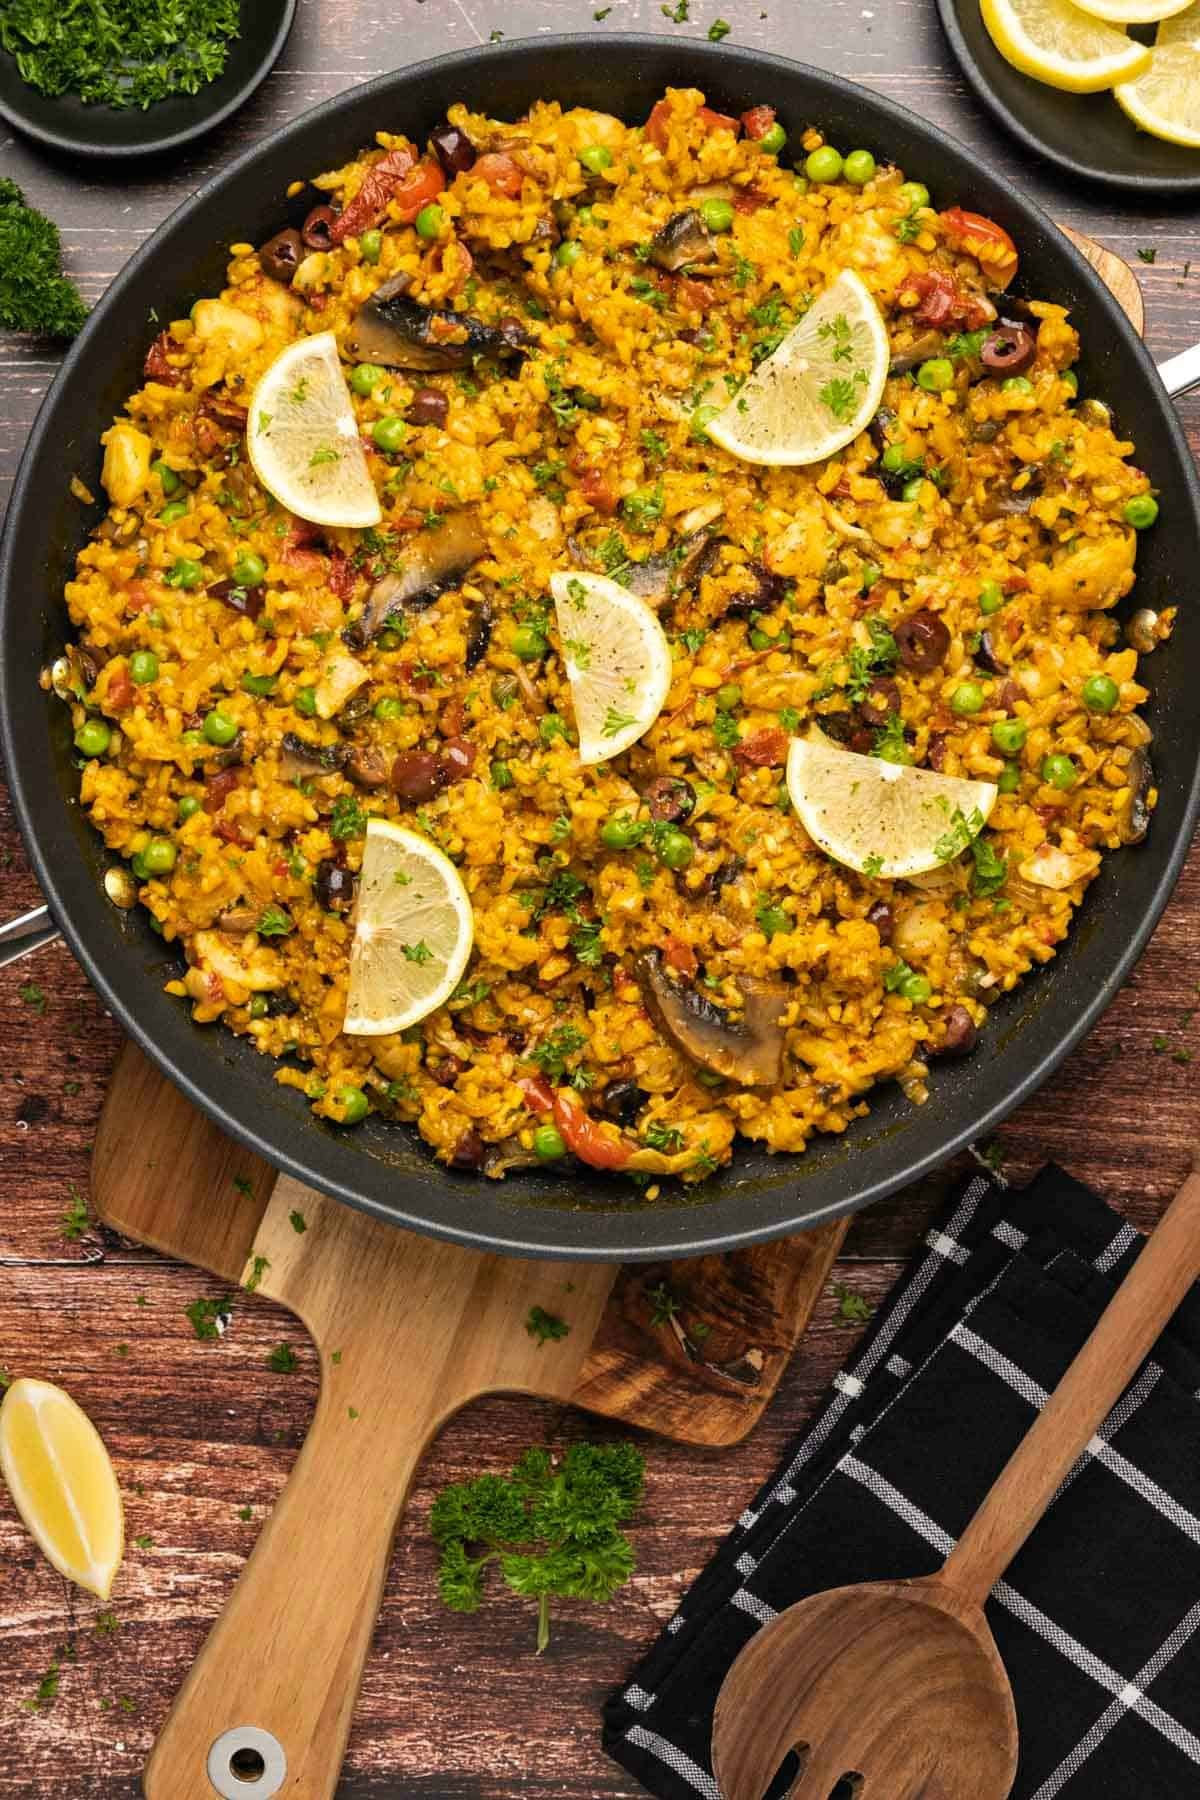 Vegetable paella topped with lemon slices and fresh parsley in a black paella pan.